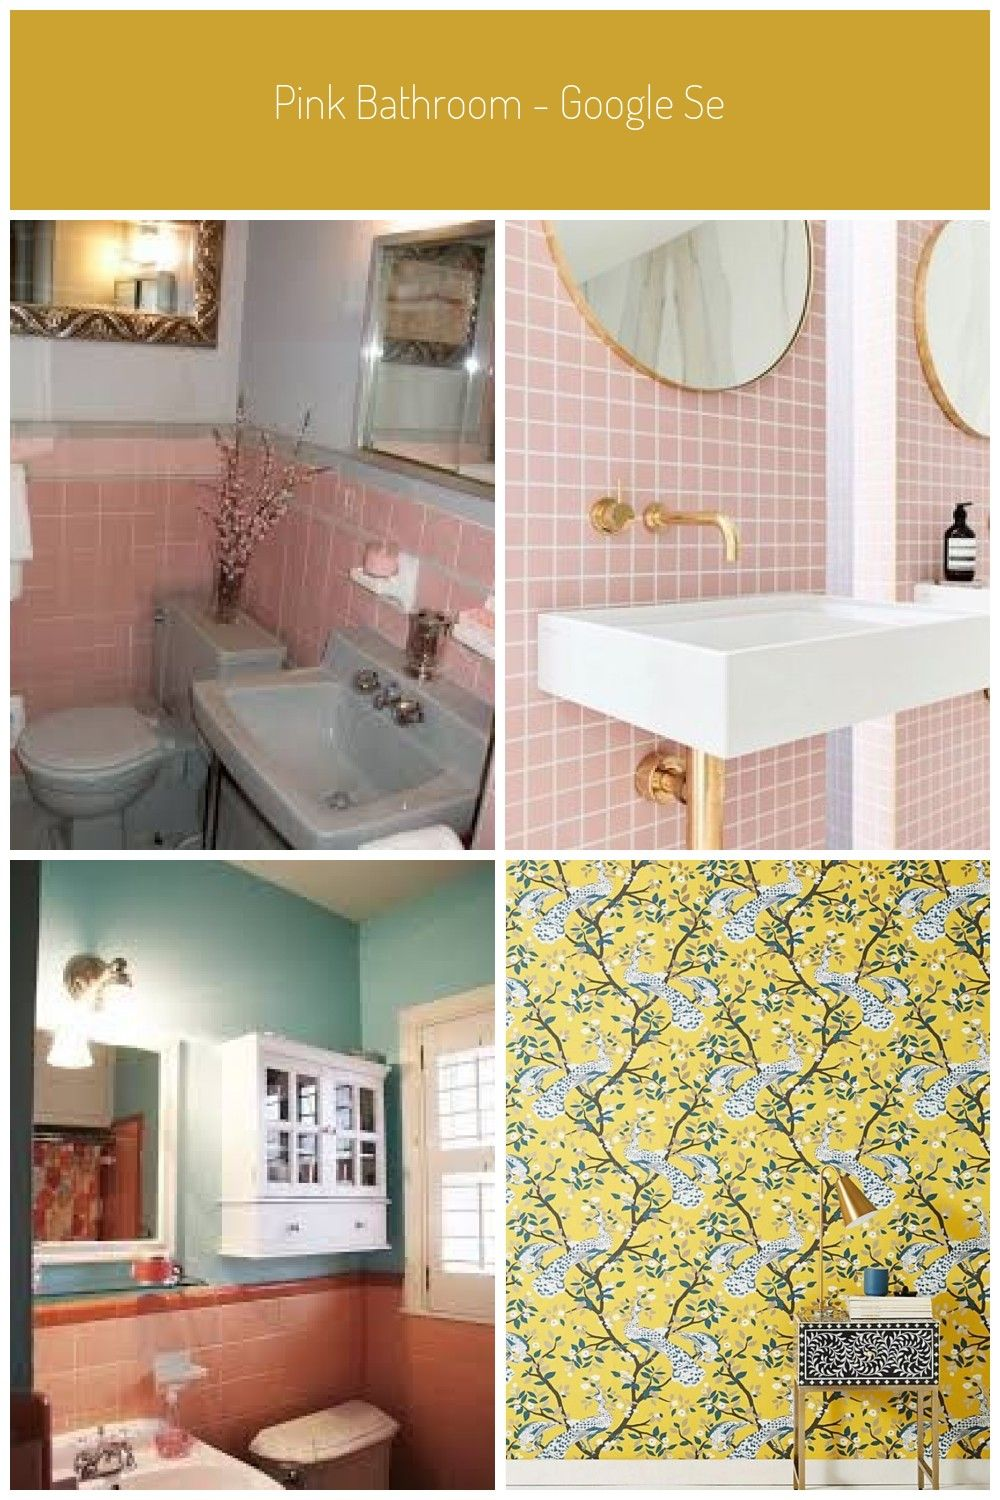 Pink Bathroom Google Search Bathroom Google Pink Search Badezimmer Rosa Fliesen In 2020 Pink Bathroom Bathroom Bathroom Wallpaper